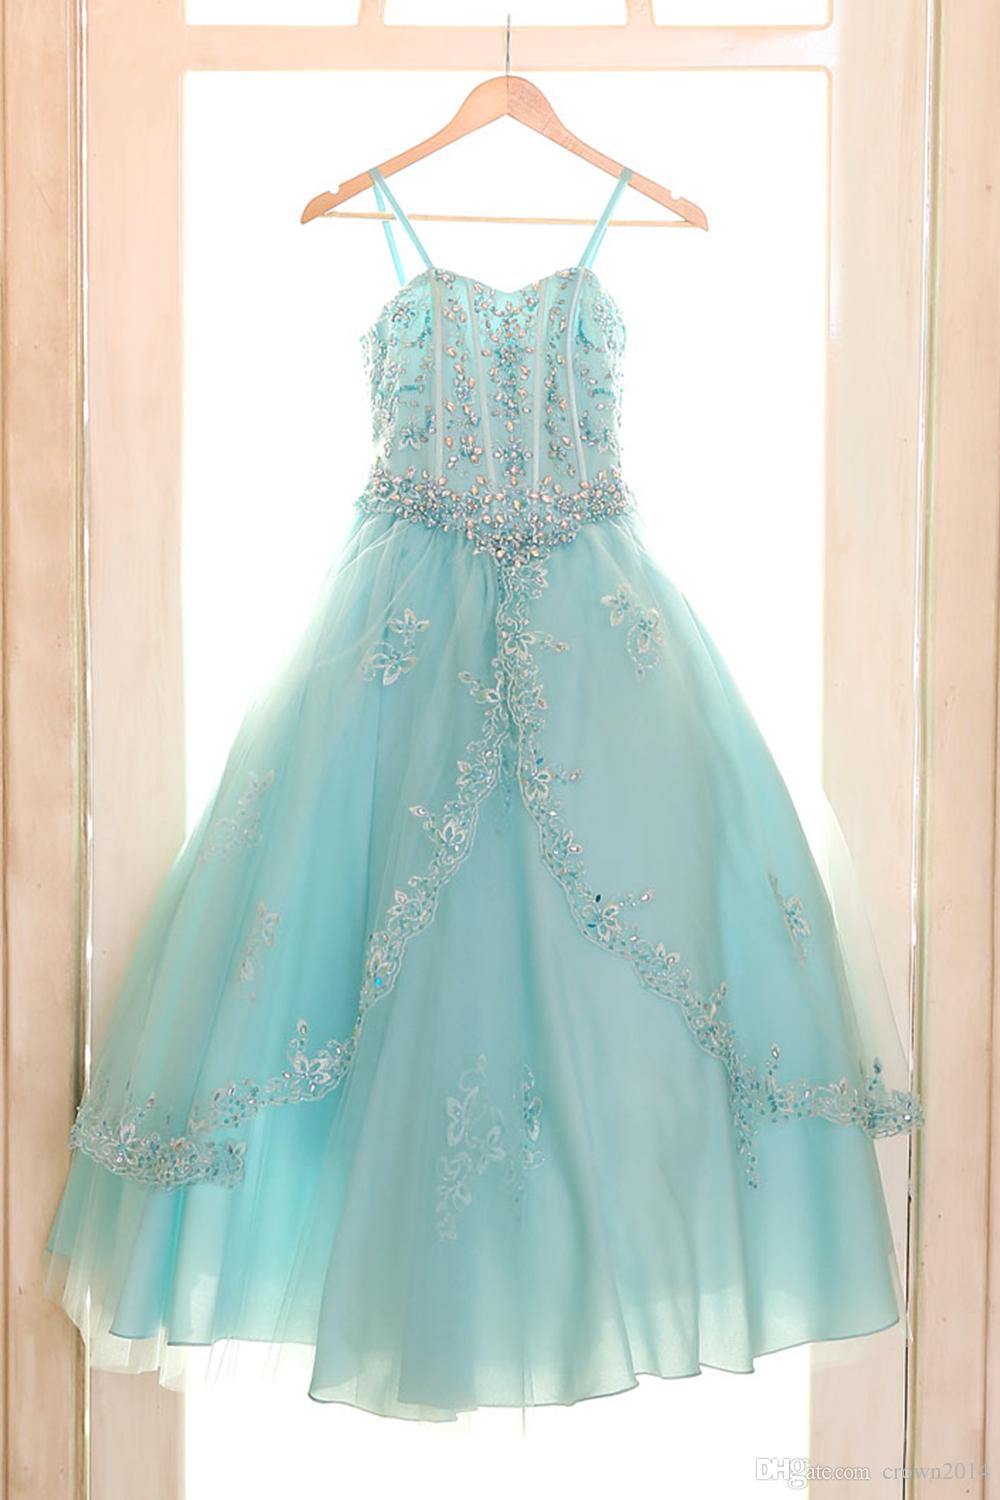 Coral Luxury Princess Ball Gown for Girls Pageant Dresses 2020 Sleeveless Flower Girl Dress With Jacket Beaded Little Girl Dress For Wedding